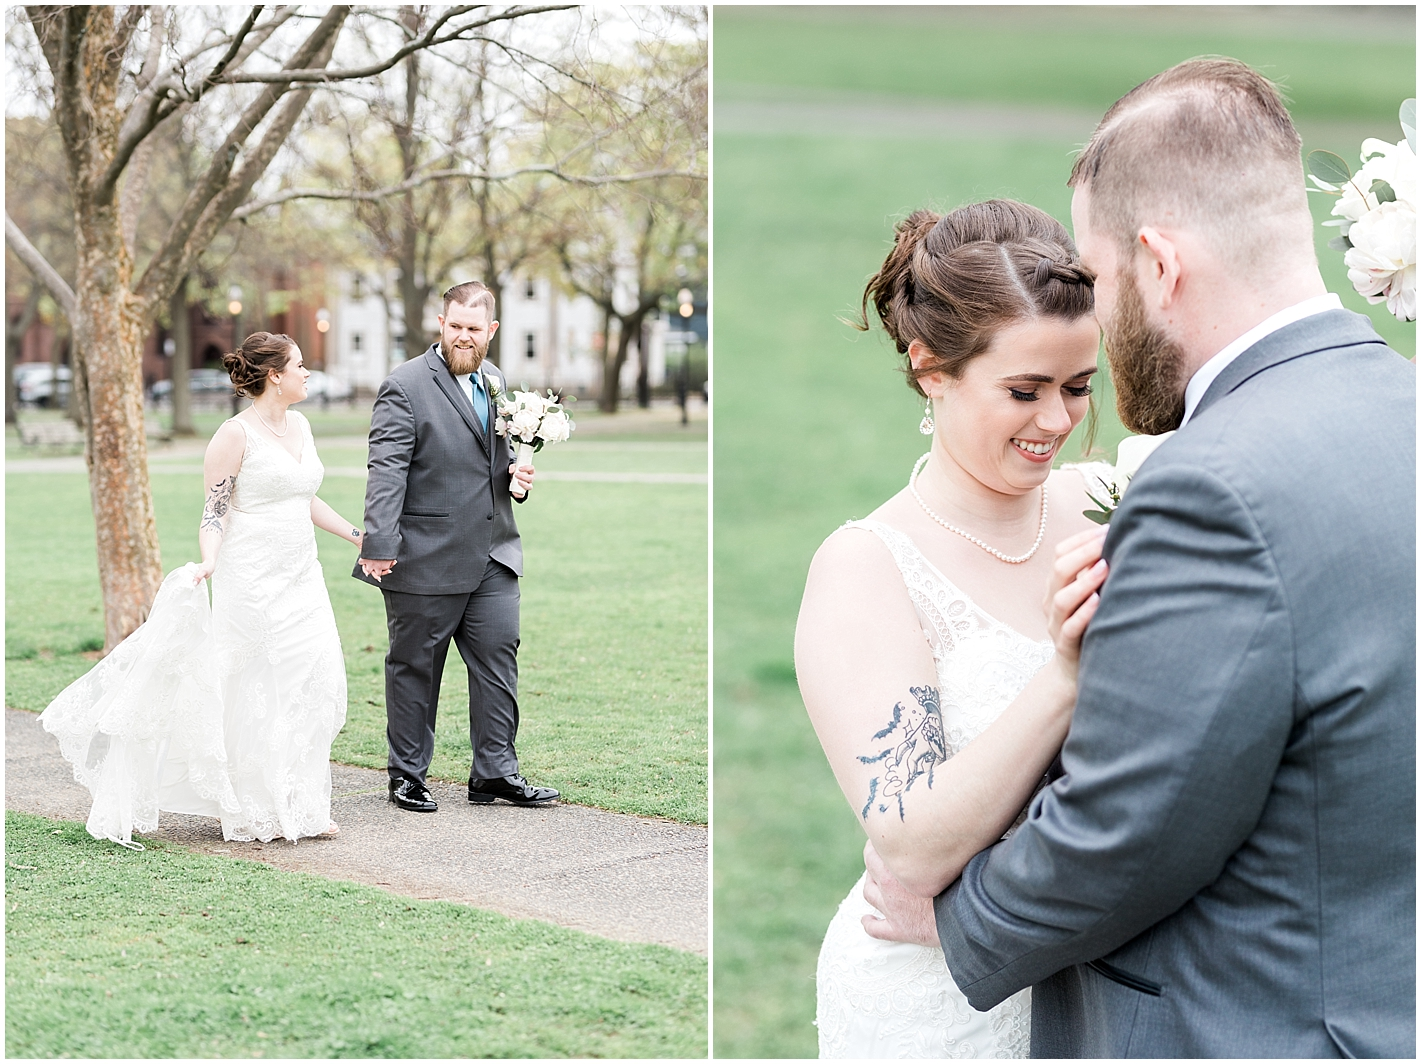 Light and Airy New England Photographer  Alyssa Parker Photography